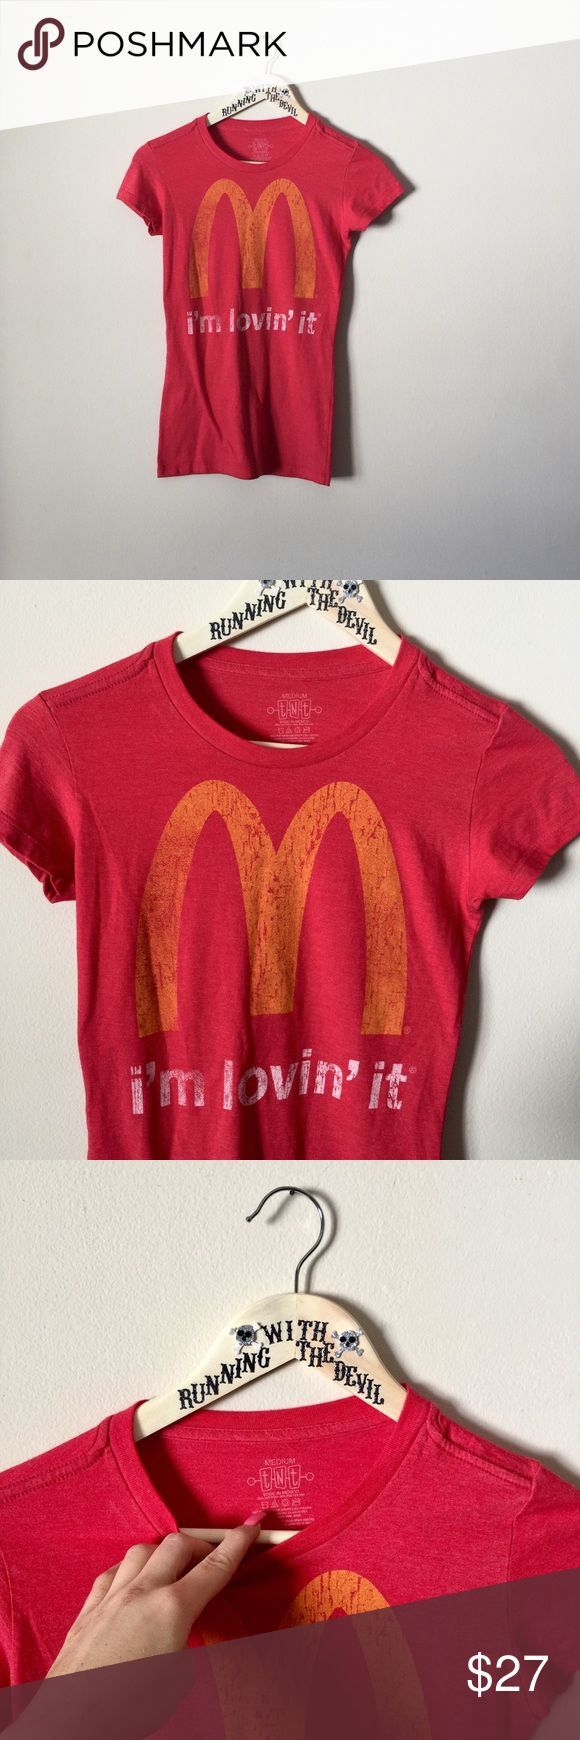 NWOT • VINTAGE • Classic McDonalds red small tee ♠️ VINTAGE • BRAND NEW WITHOUT TAGS! woman's red graphic tee with the official McDonalds logo. In excellent shape, never been worn. Cute and very retro! **Please  note that you are purchasing a USED/VINTAGE t-shirt. The more loved an item is, the better!** ♠️ SIZE • woman's medium   ☠️ BUNDLEtoSAVE ☠️ ACCEPTING OFFERS ☠️ 〰    #mcdonalds #logo #red #vintage #vtg #retro #throwback #graphictee #nwot #fastfood #comfortable #mickeydees Vintage Tops…